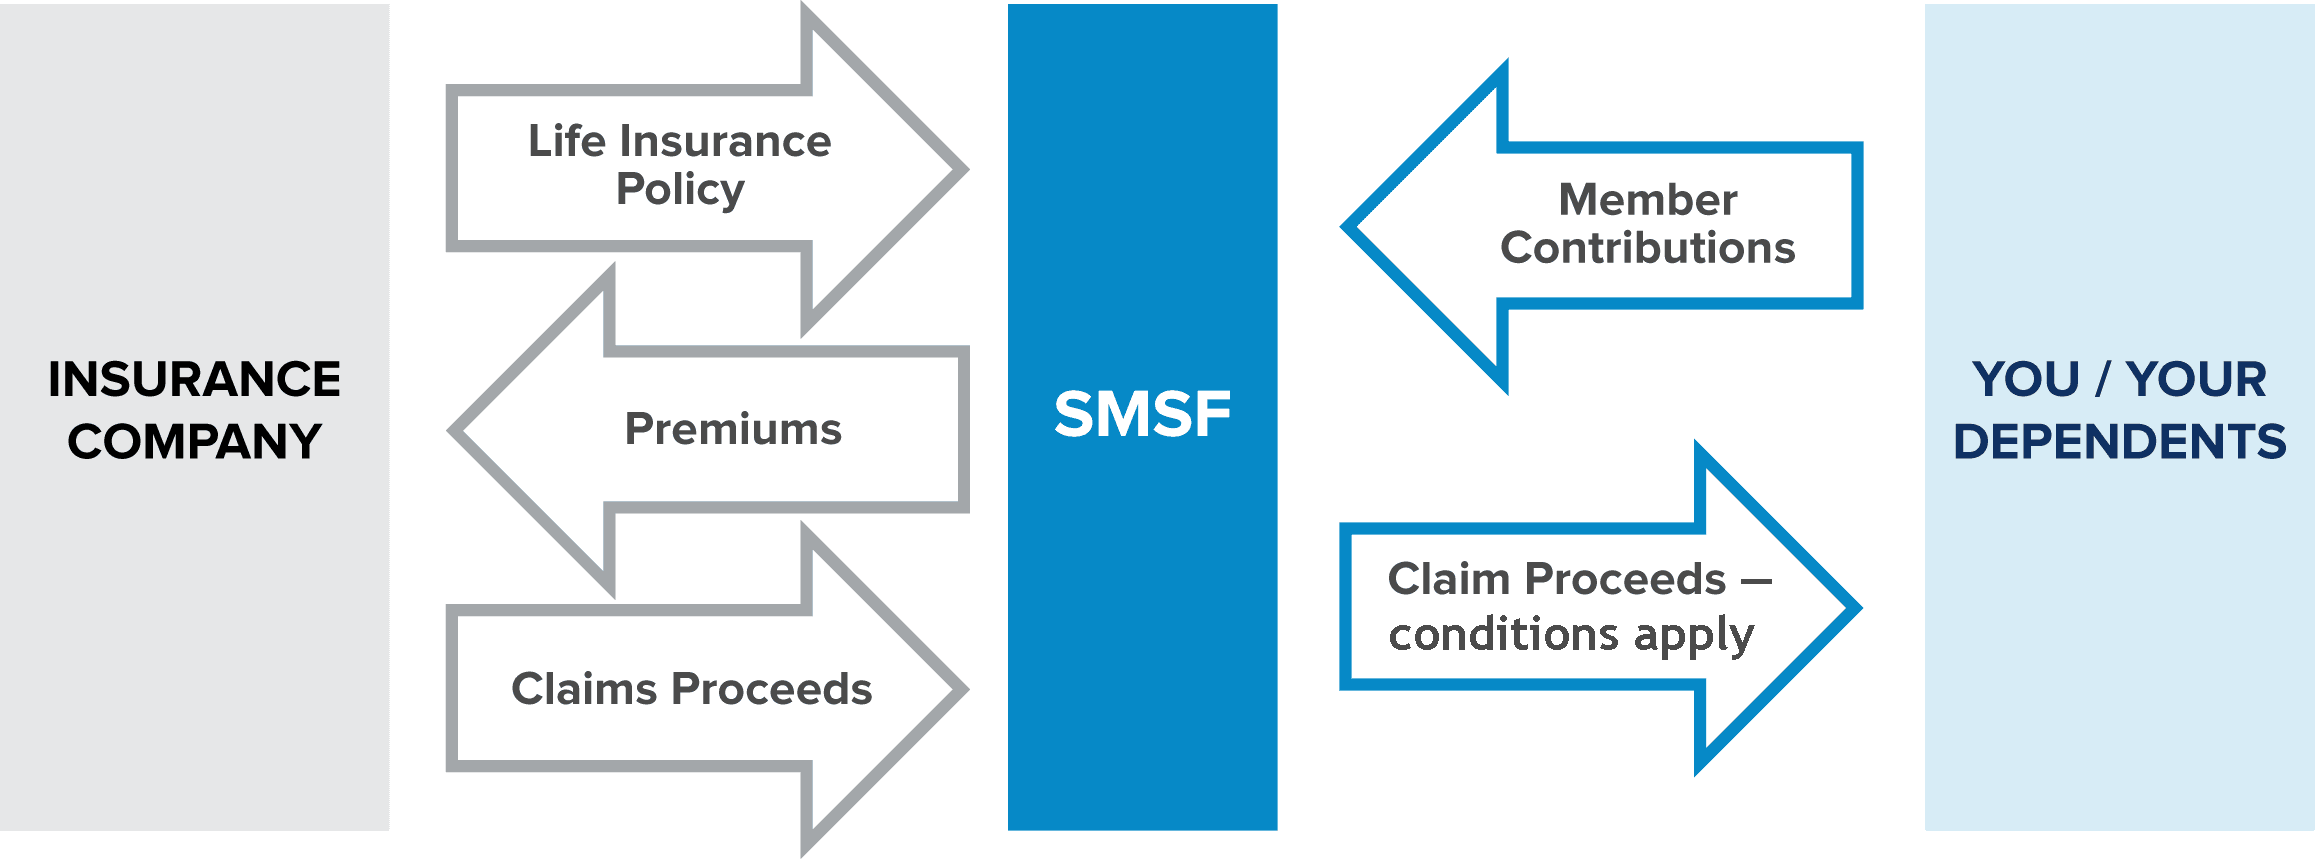 SMSF Life Insurance process